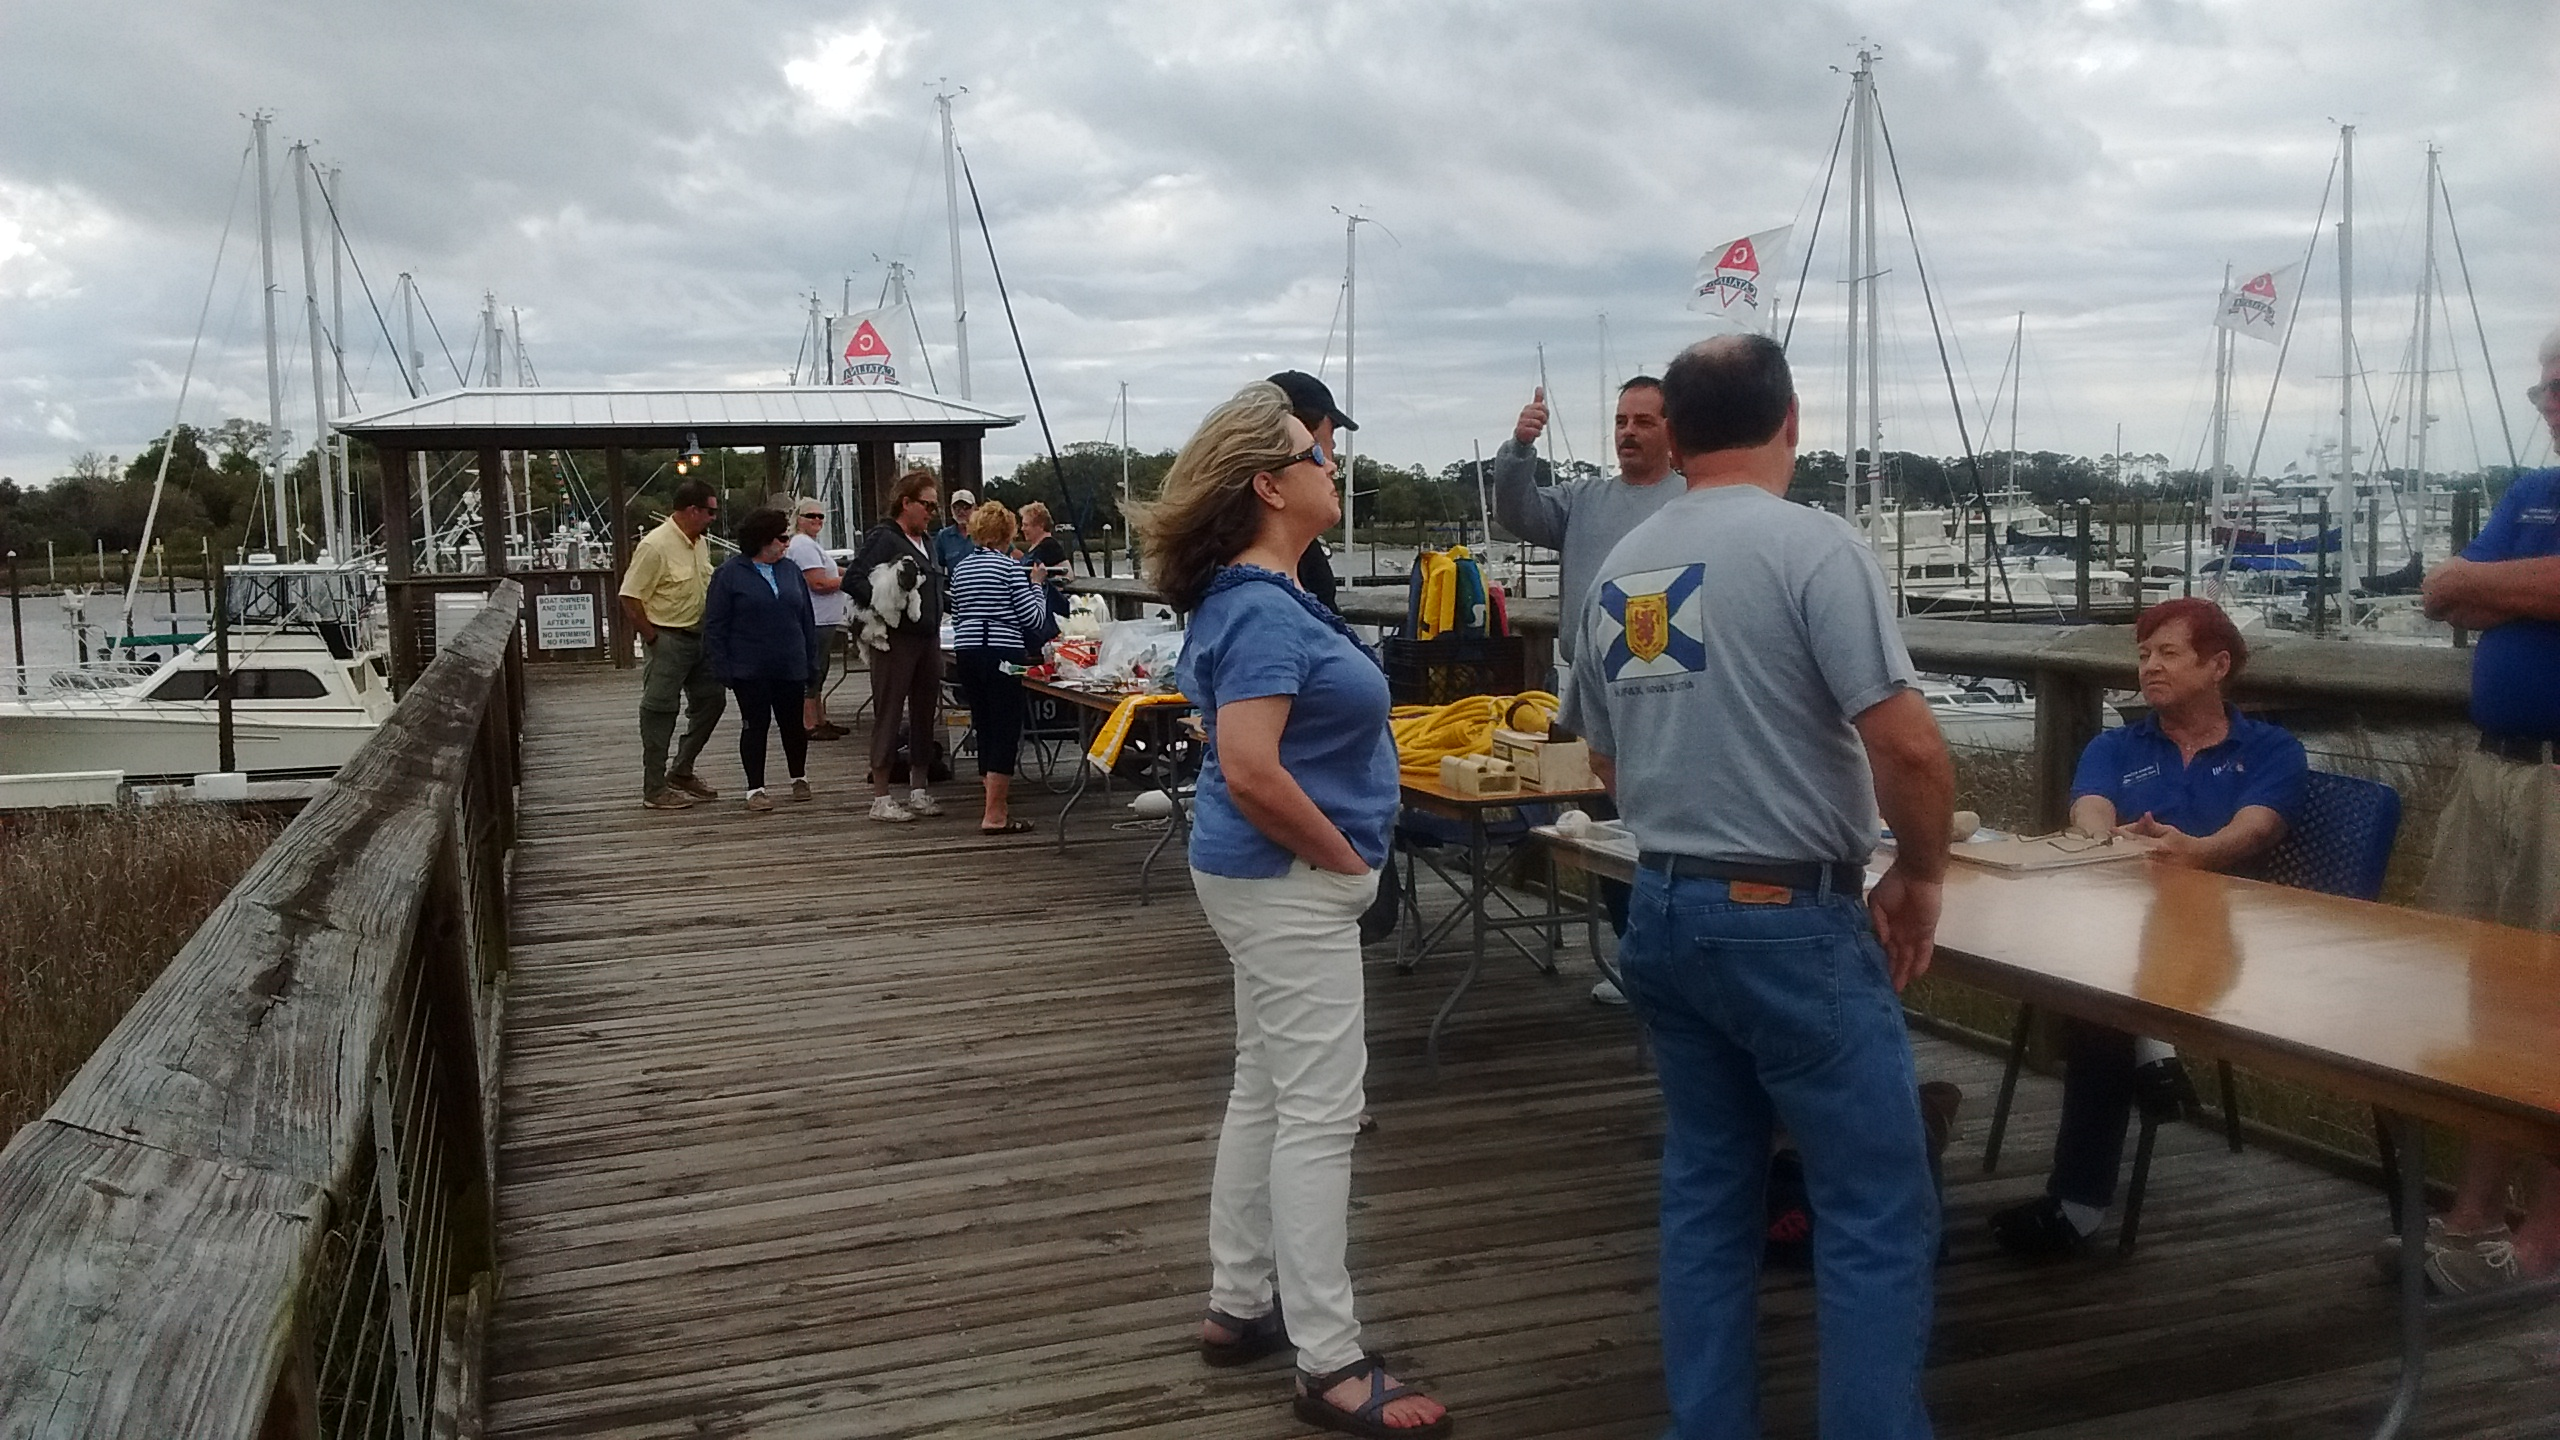 Group gathered at Morningstar Marinas Golden Isles dock during a boat show